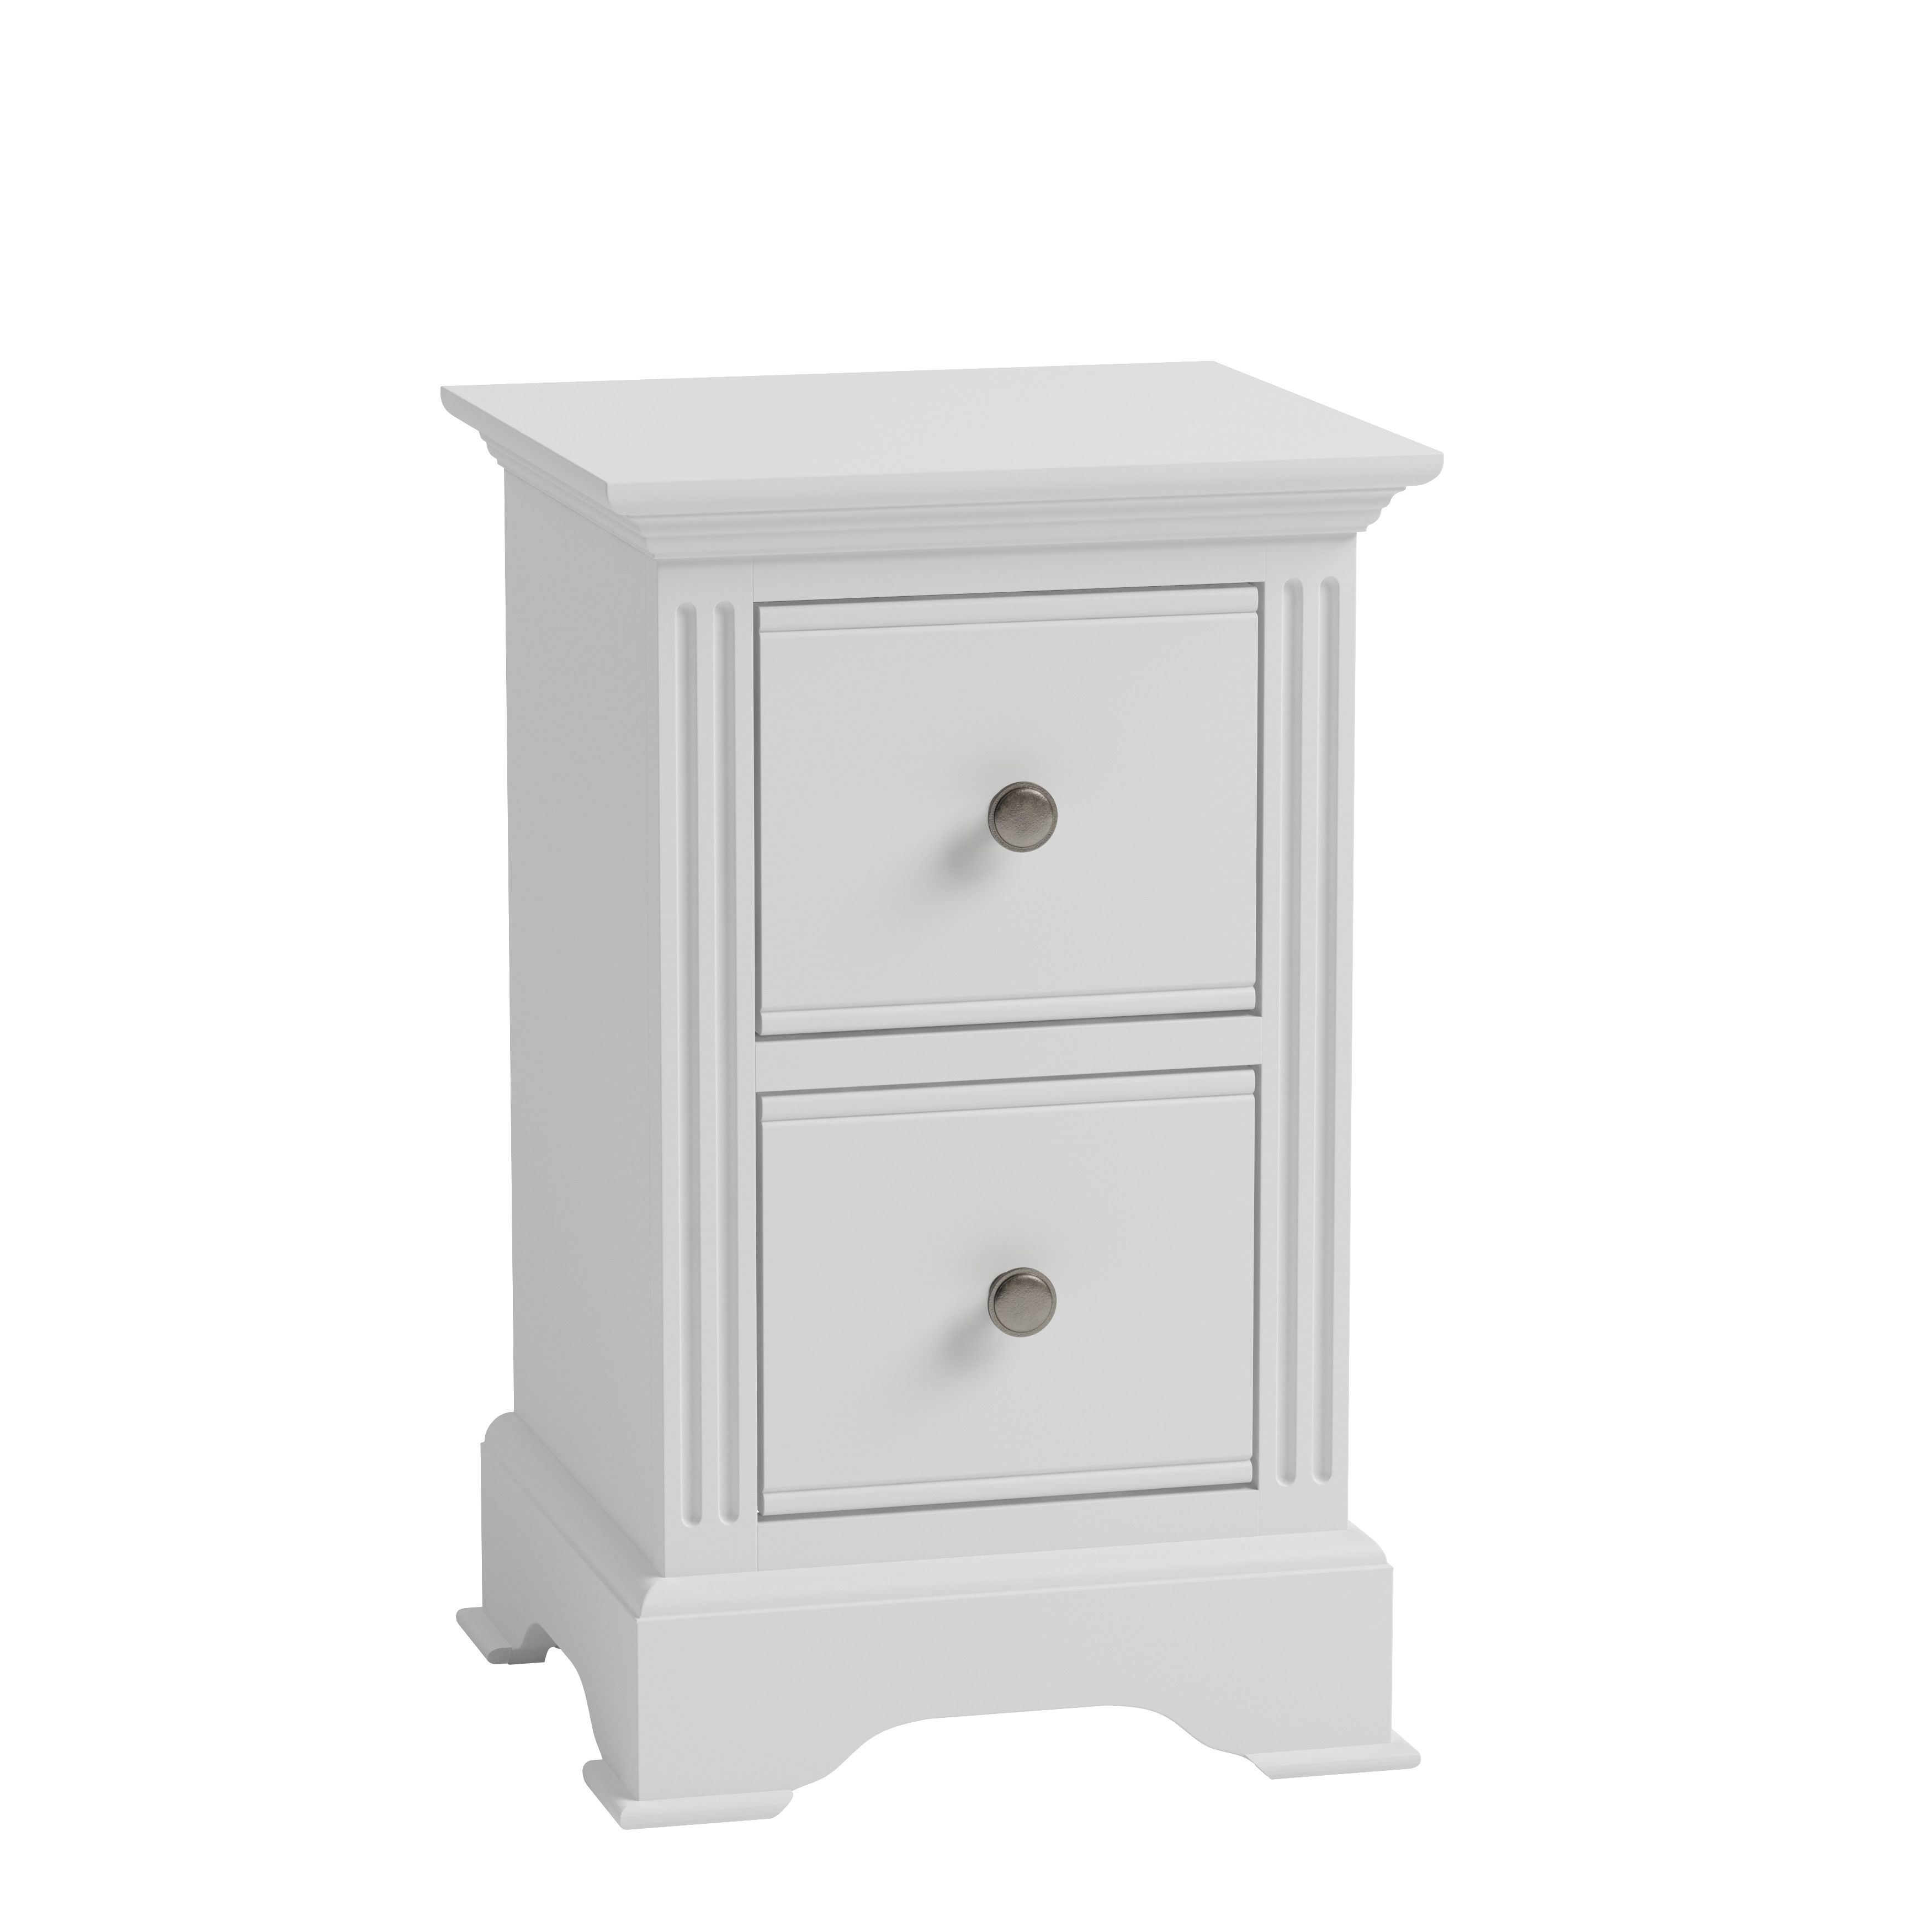 EIFFLE WHITE - Small Bedside Cabinet